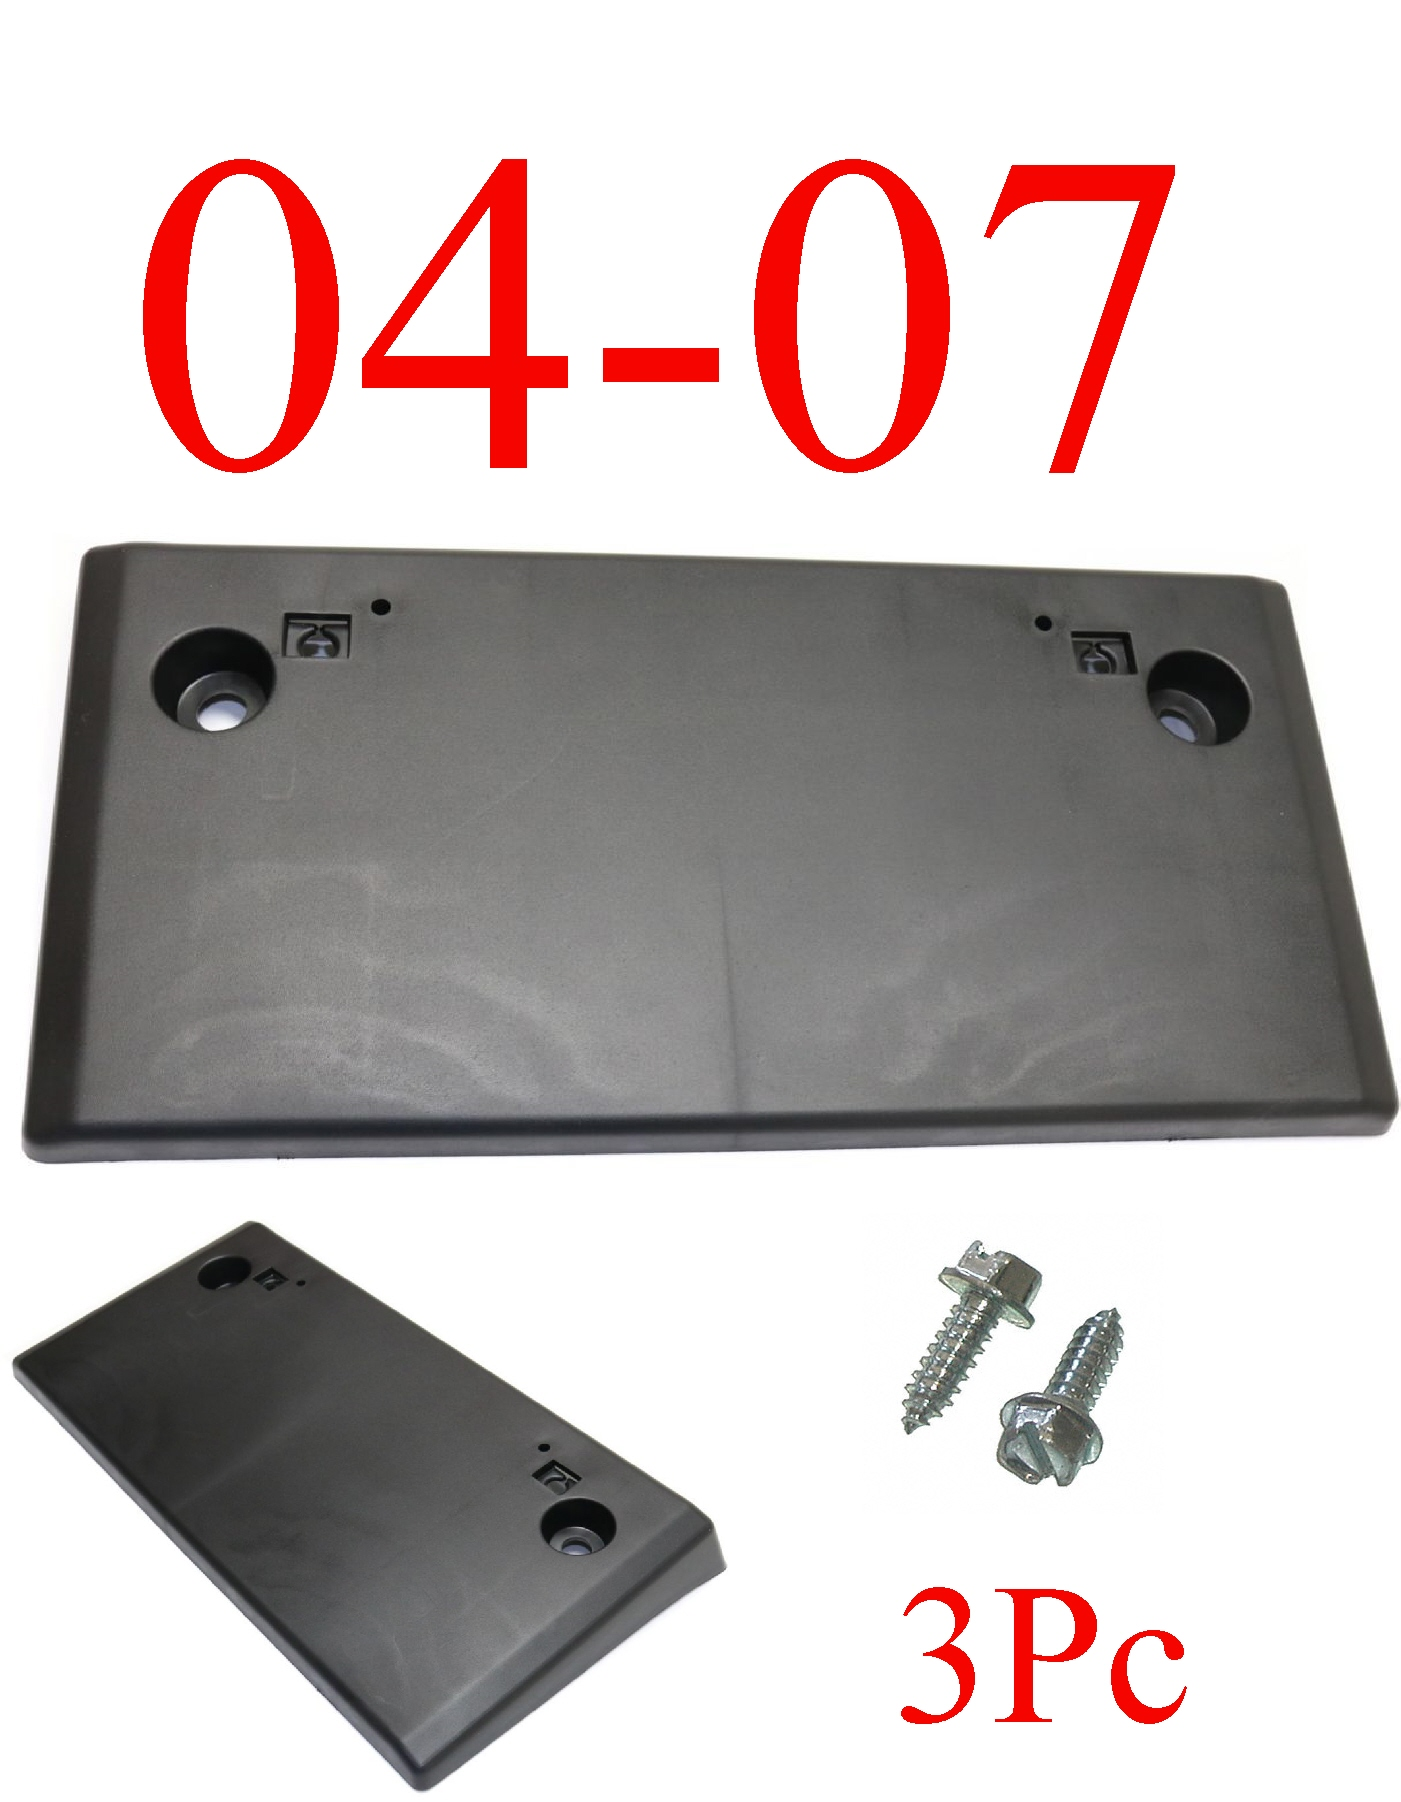 04-07 Mitsubishi Lancer 3Pc Front License Plate Bracket